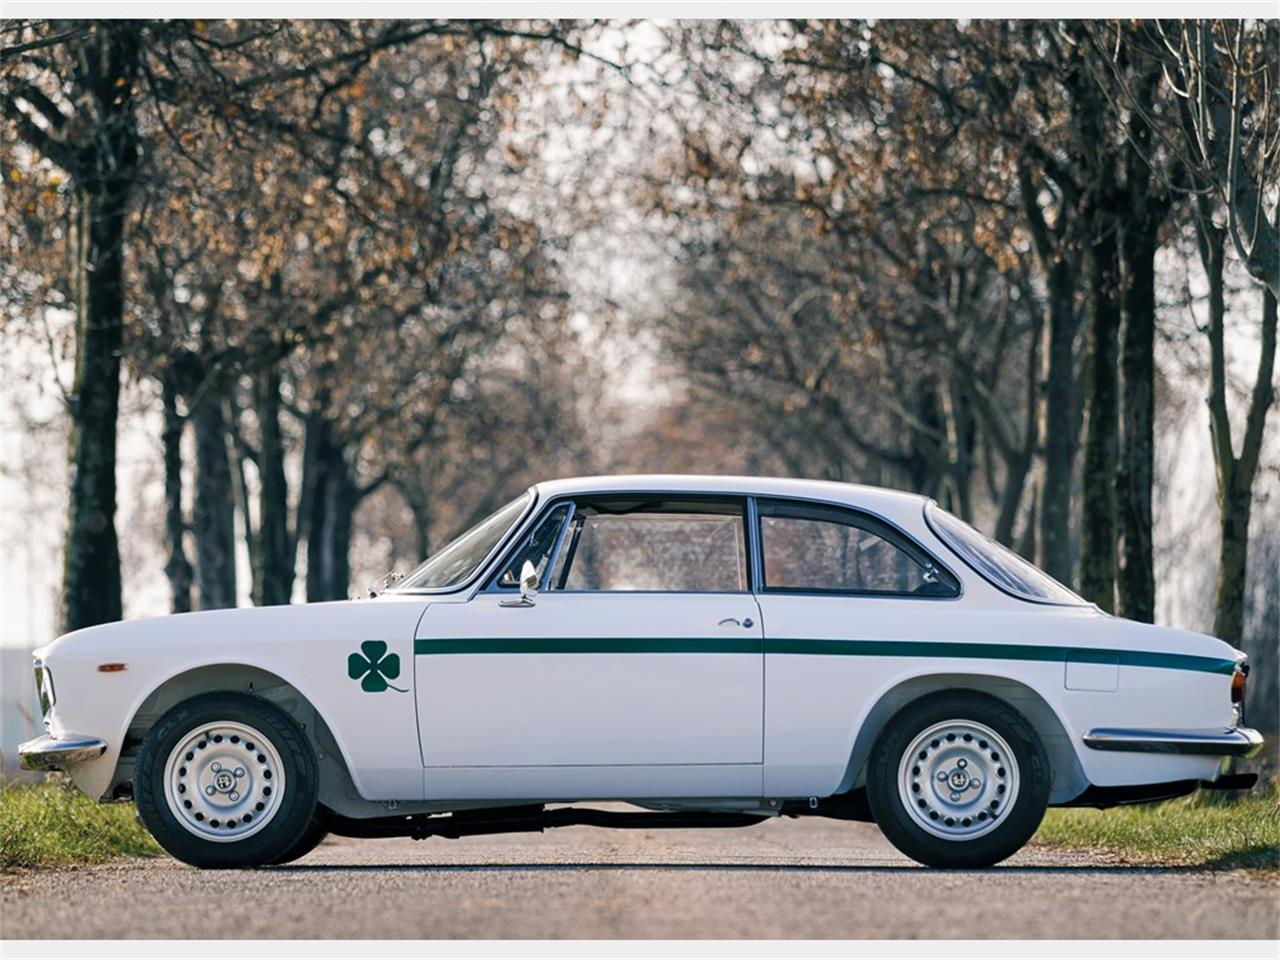 Large Picture of Classic 1973 Alfa Romeo GTA 1300 Junior Stradale Offered by RM Auctions - PCJO